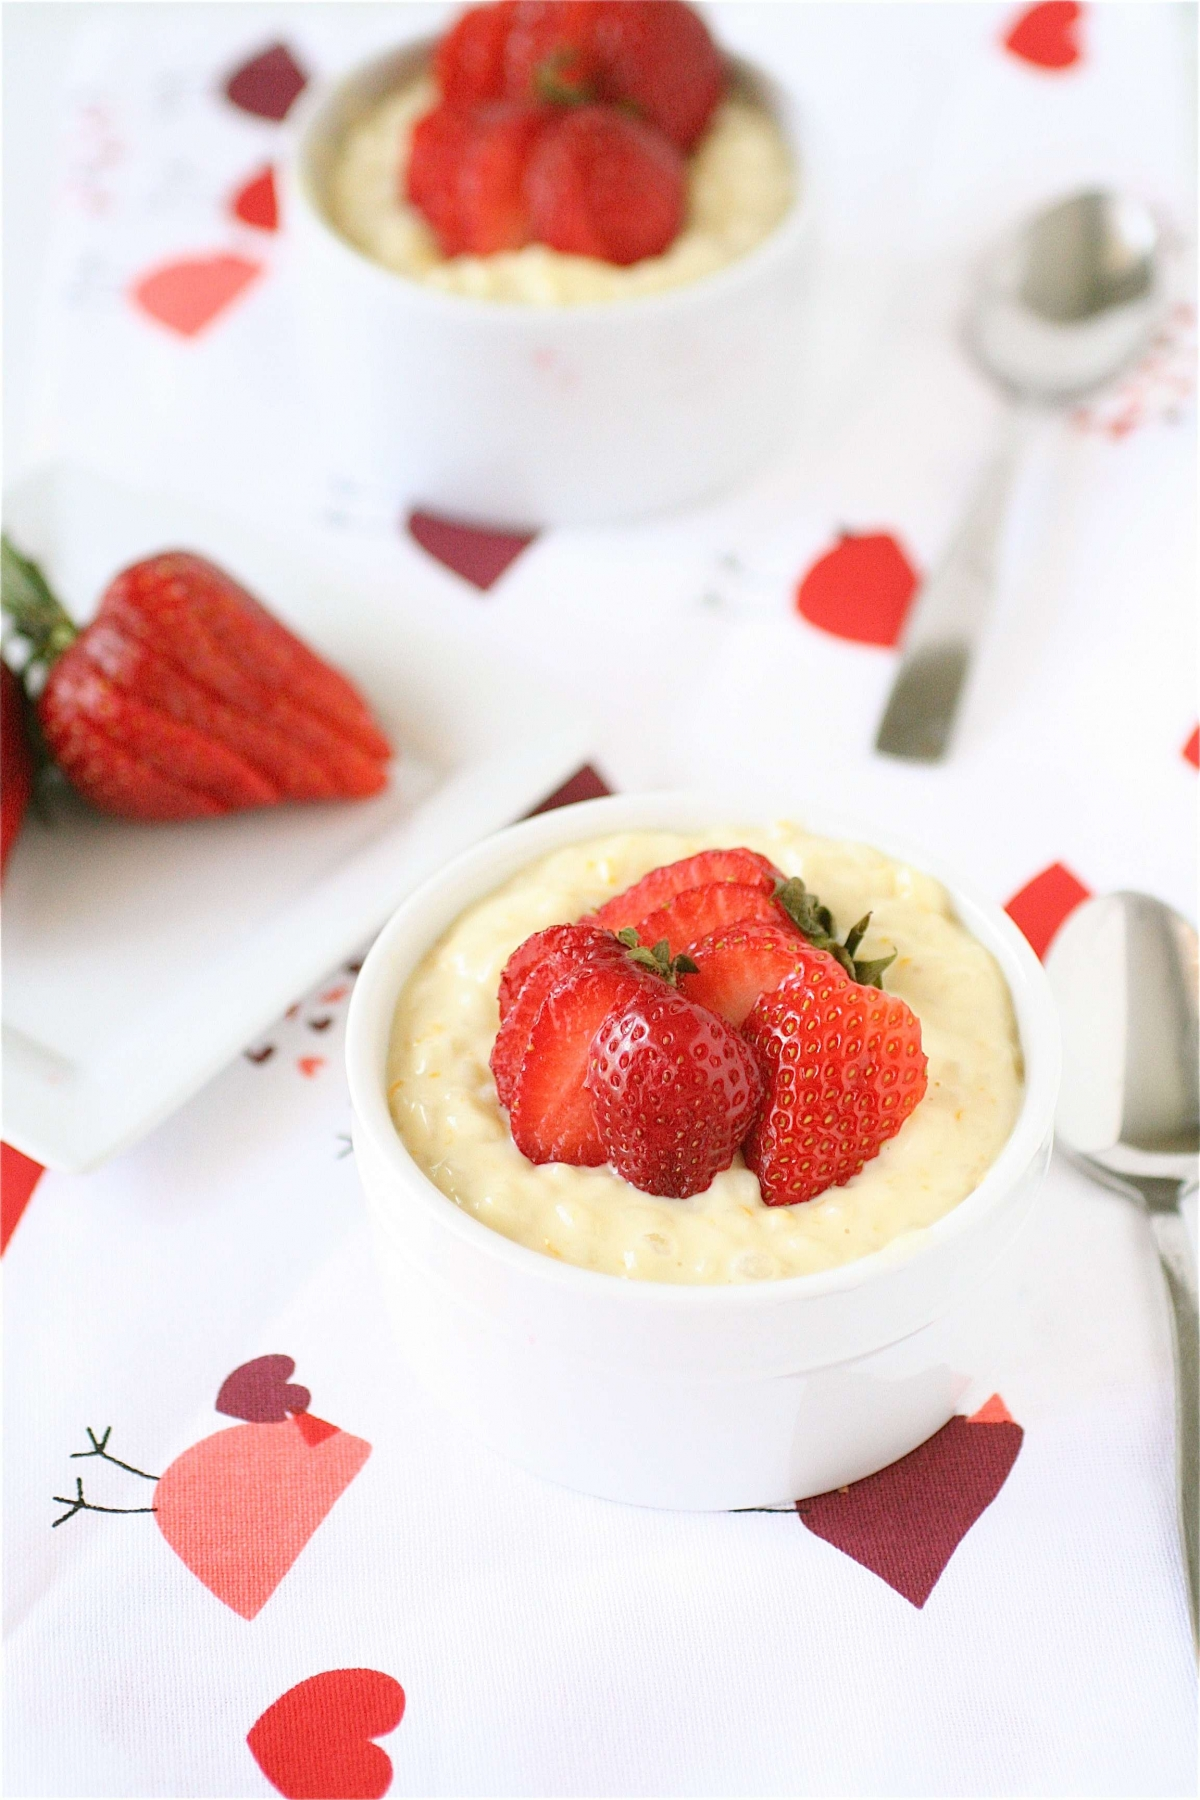 Sweet Orange Risotto With Strawberries | The Curvy Carrot